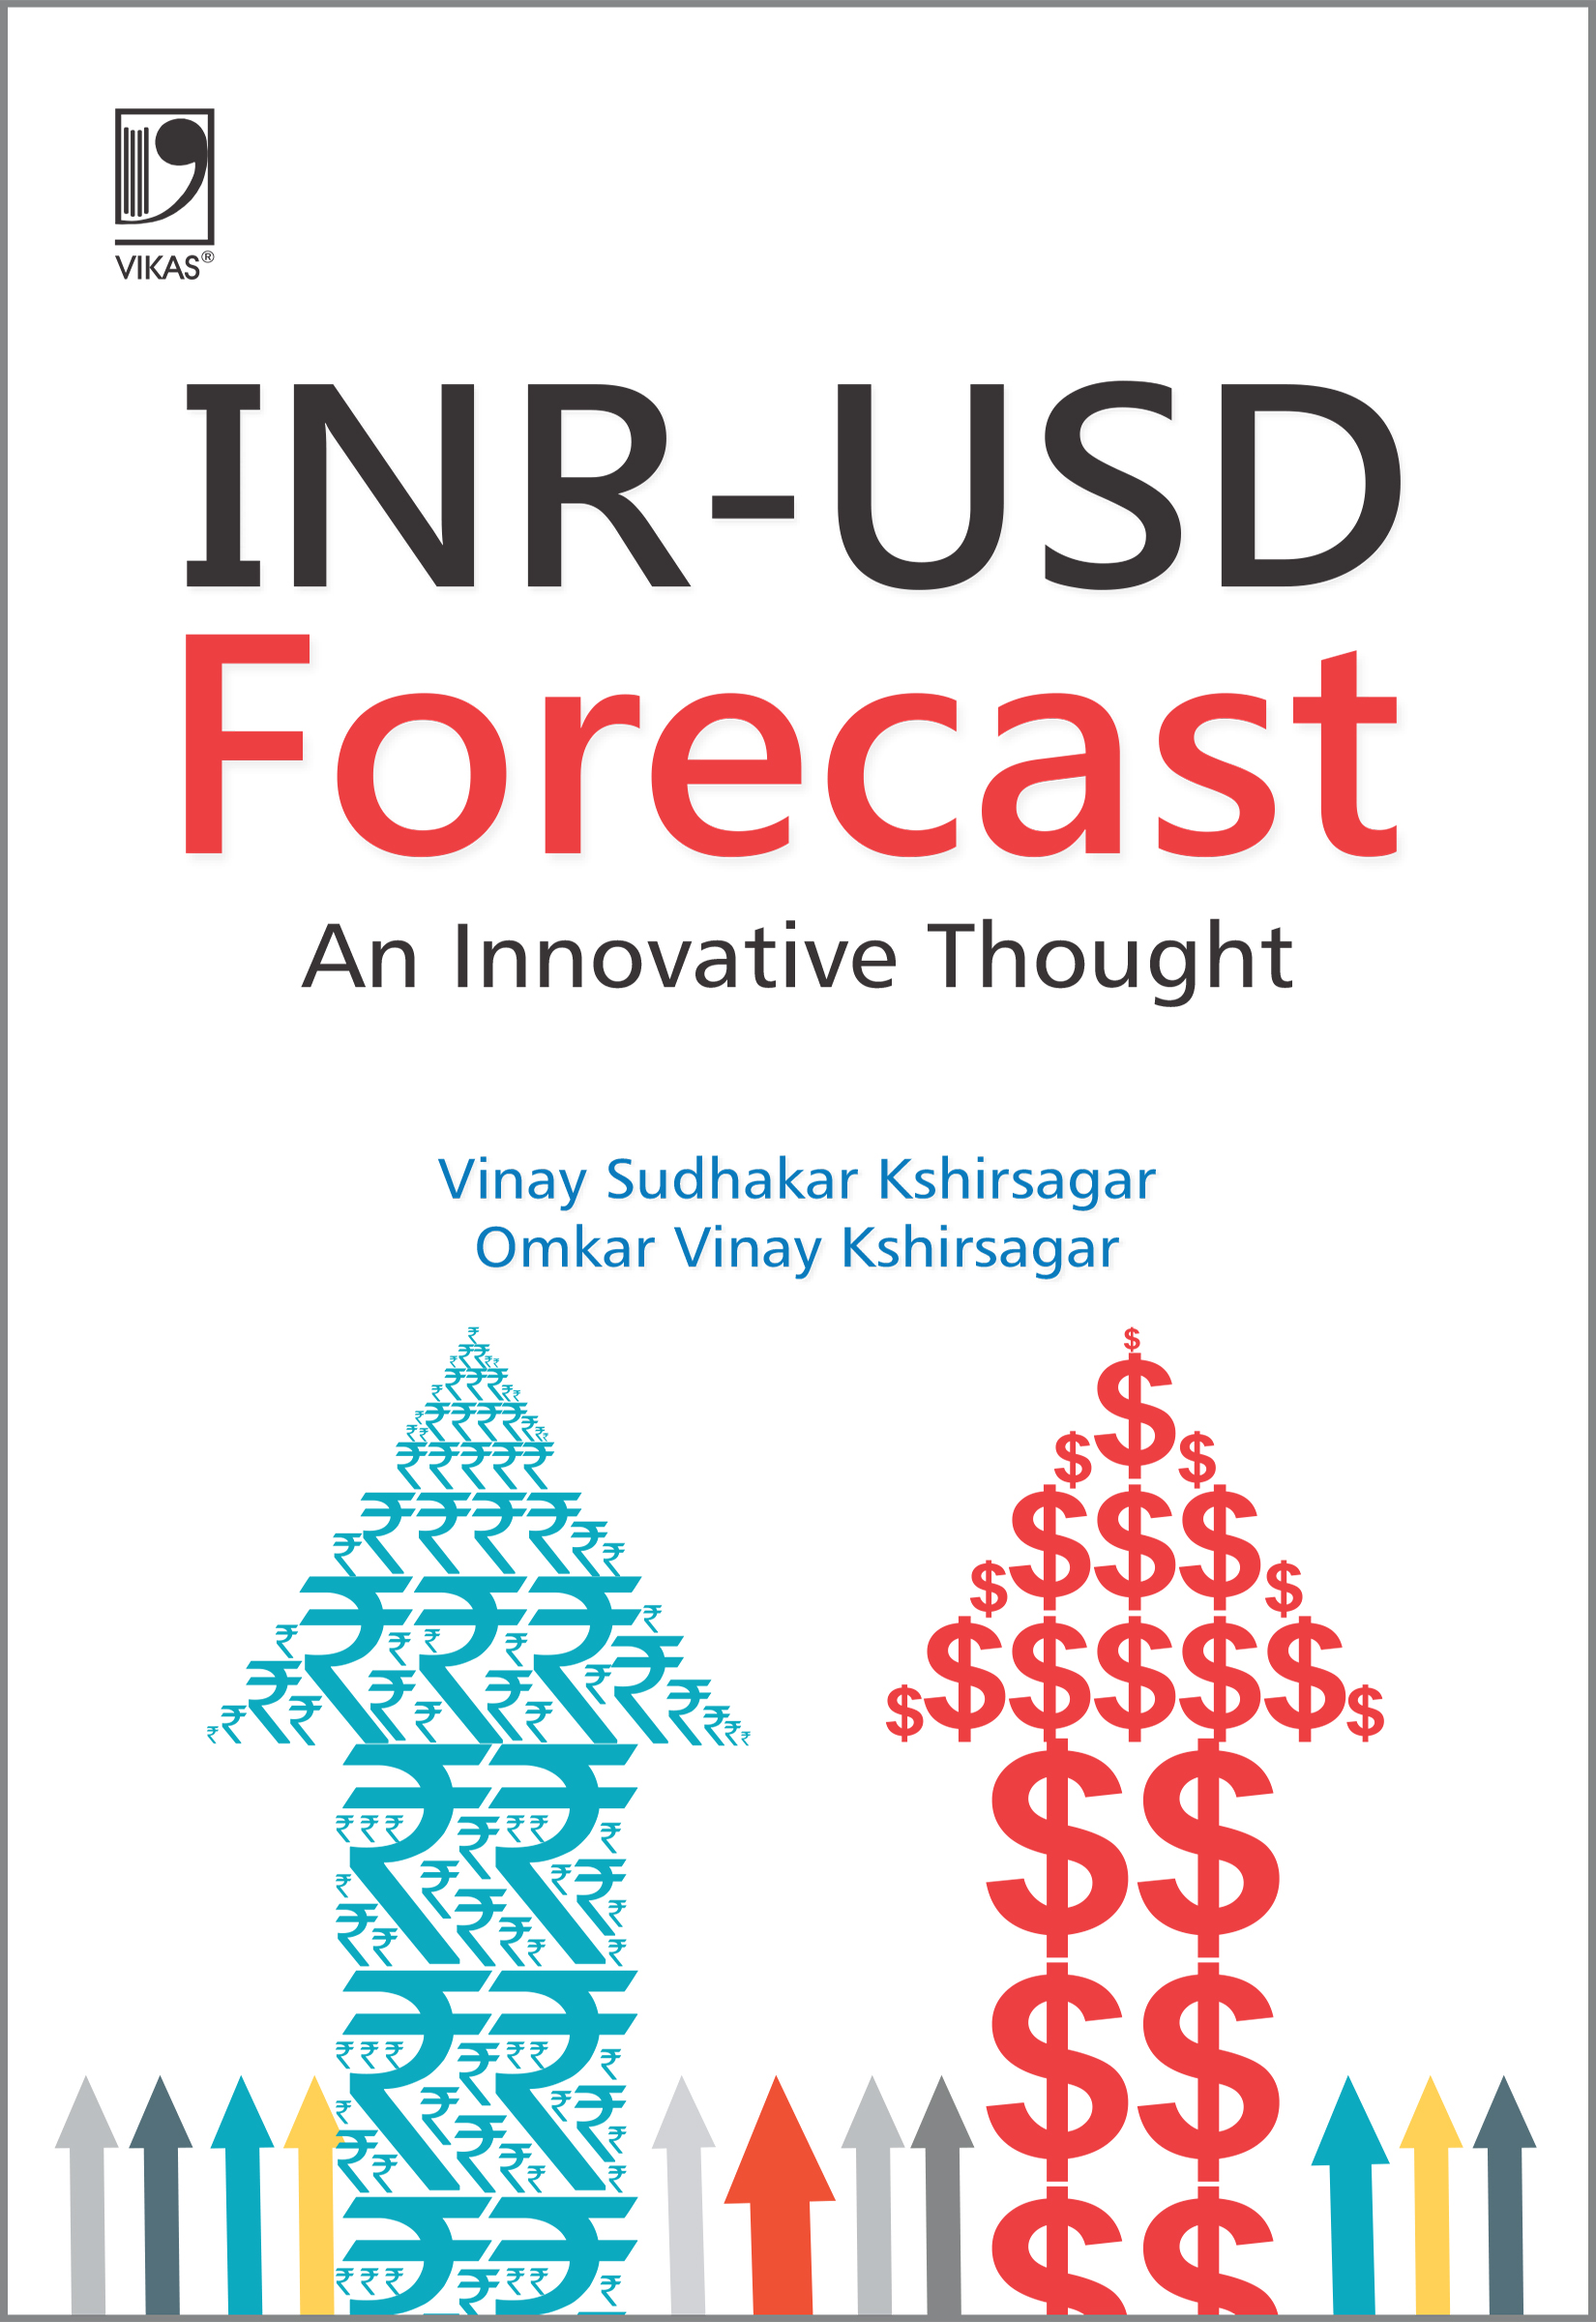 INR-USD FORECAST: AN INNOVATIVE THOUGHT by  VINAY SUDHAKAR KSHIRSAGAR